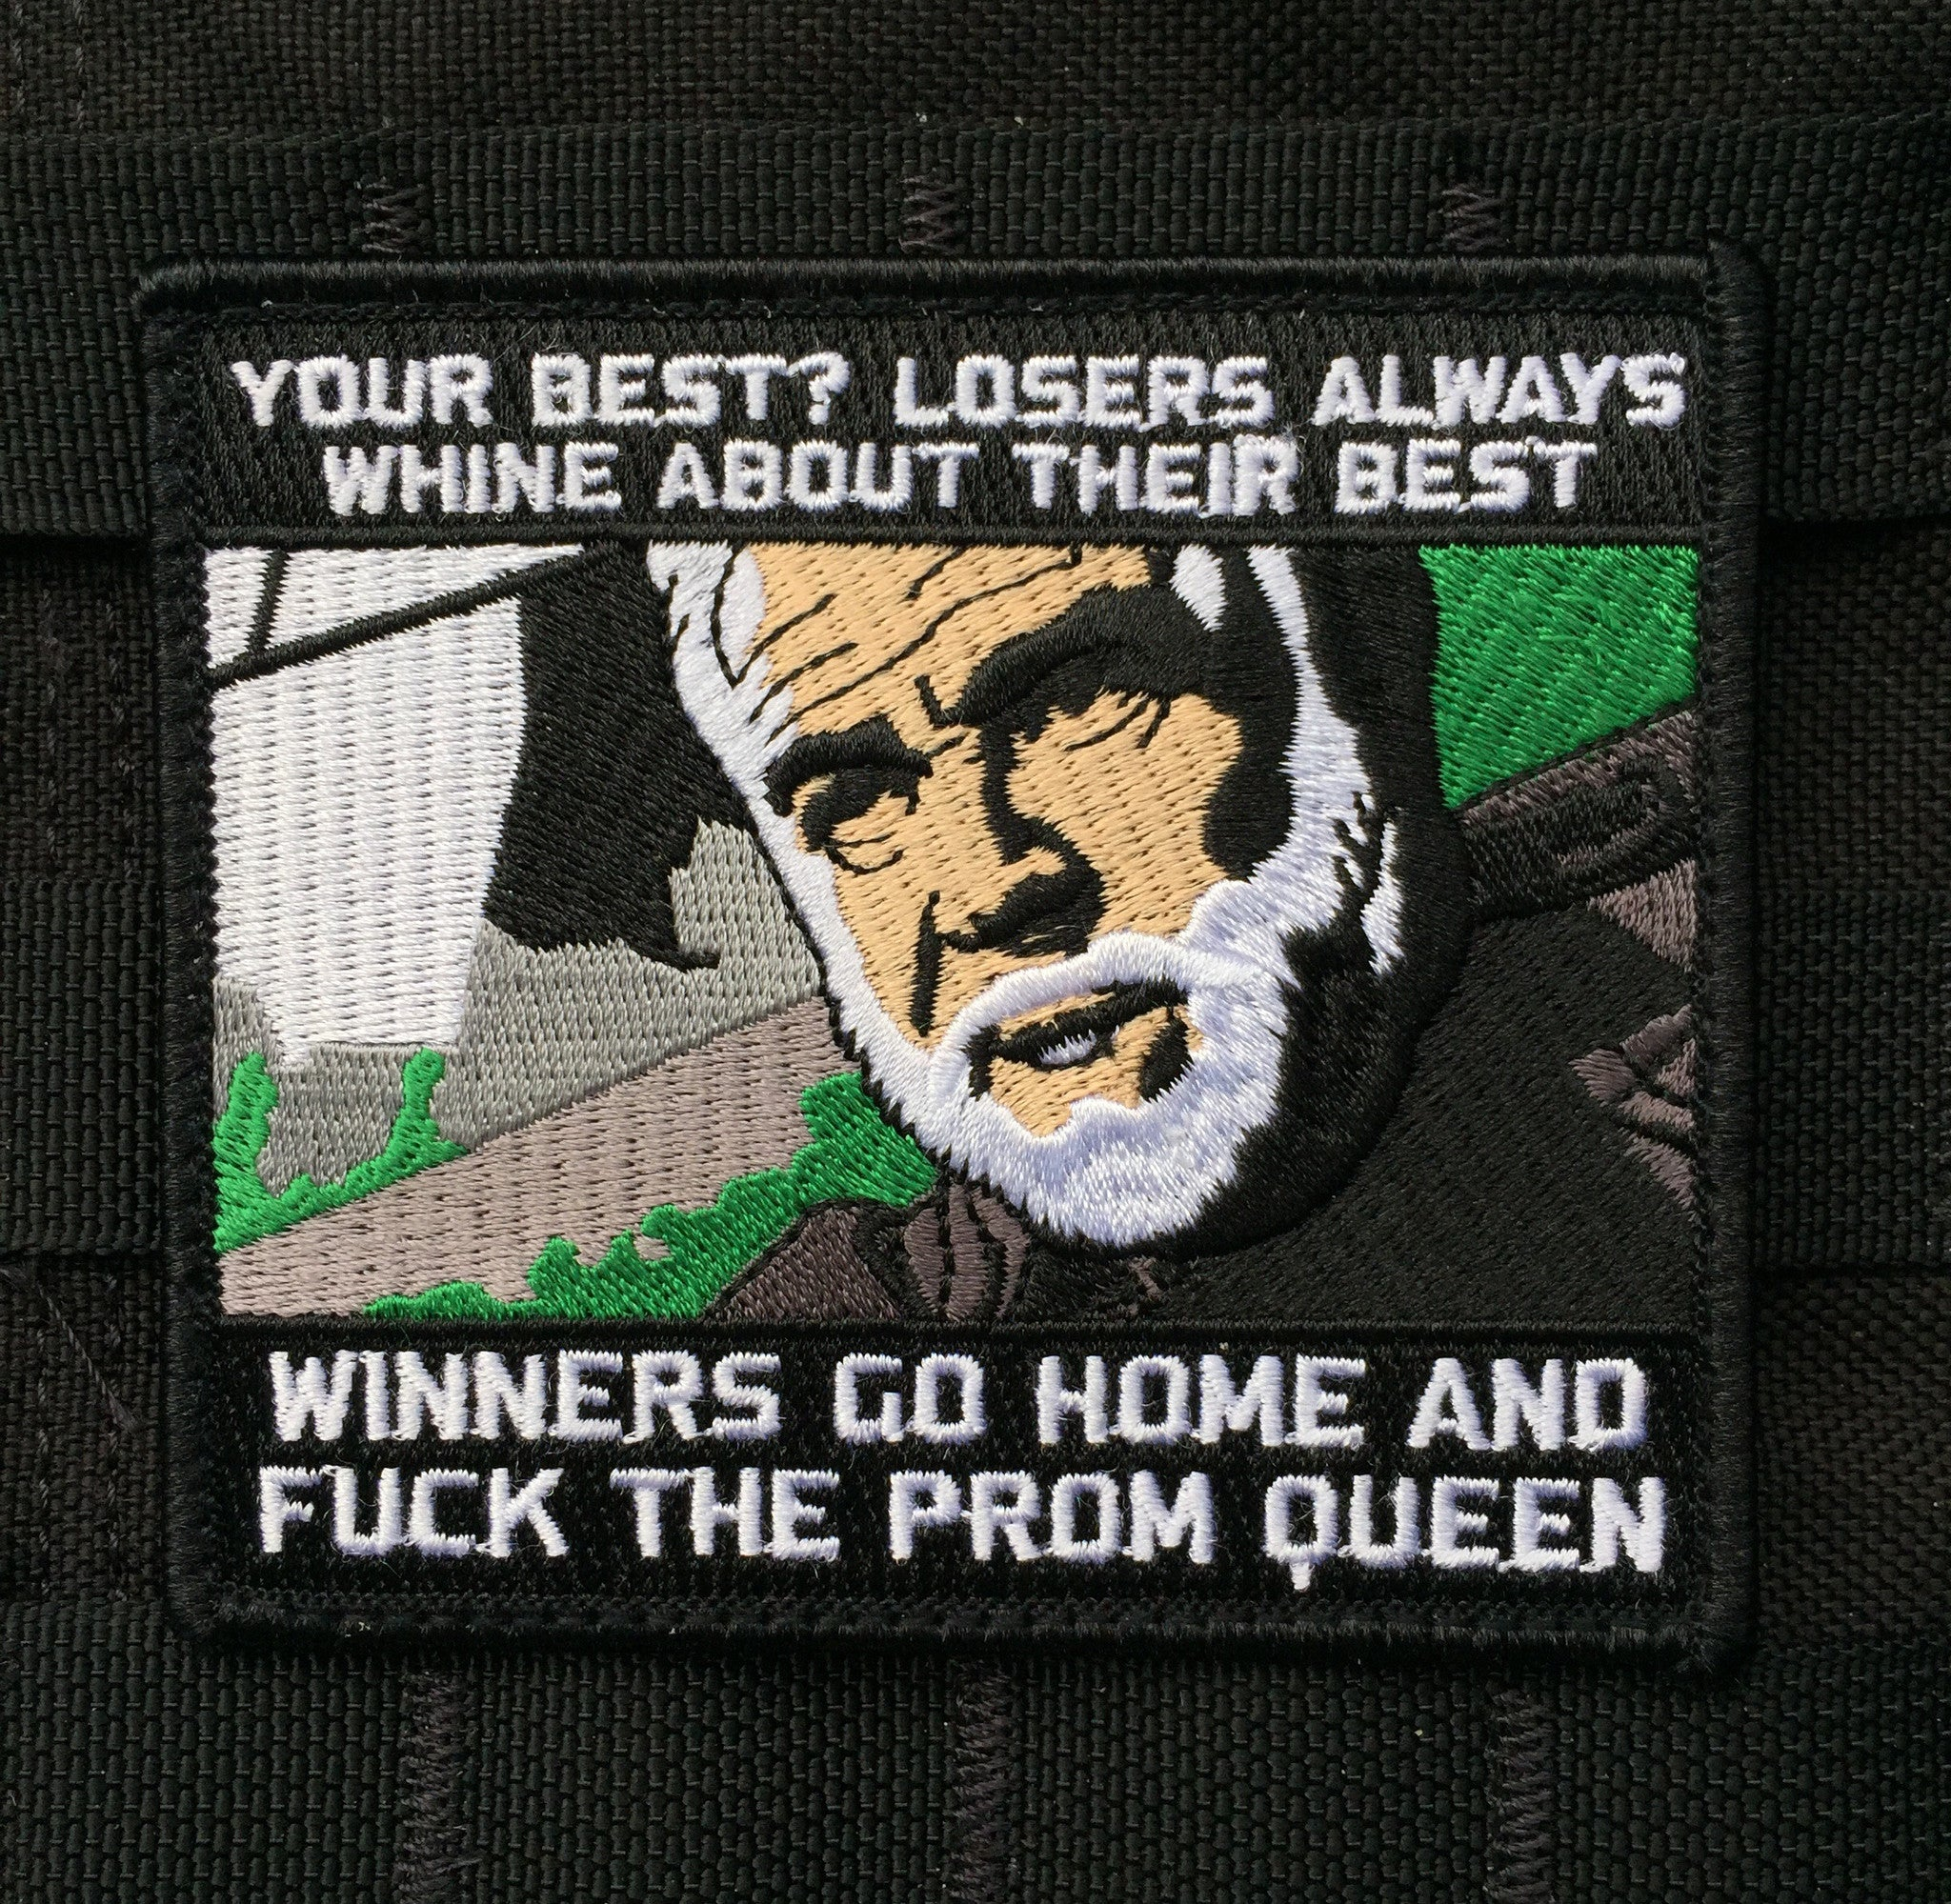 "The Rock ""Losers Always Whine About Their Best"" Morale Patch"